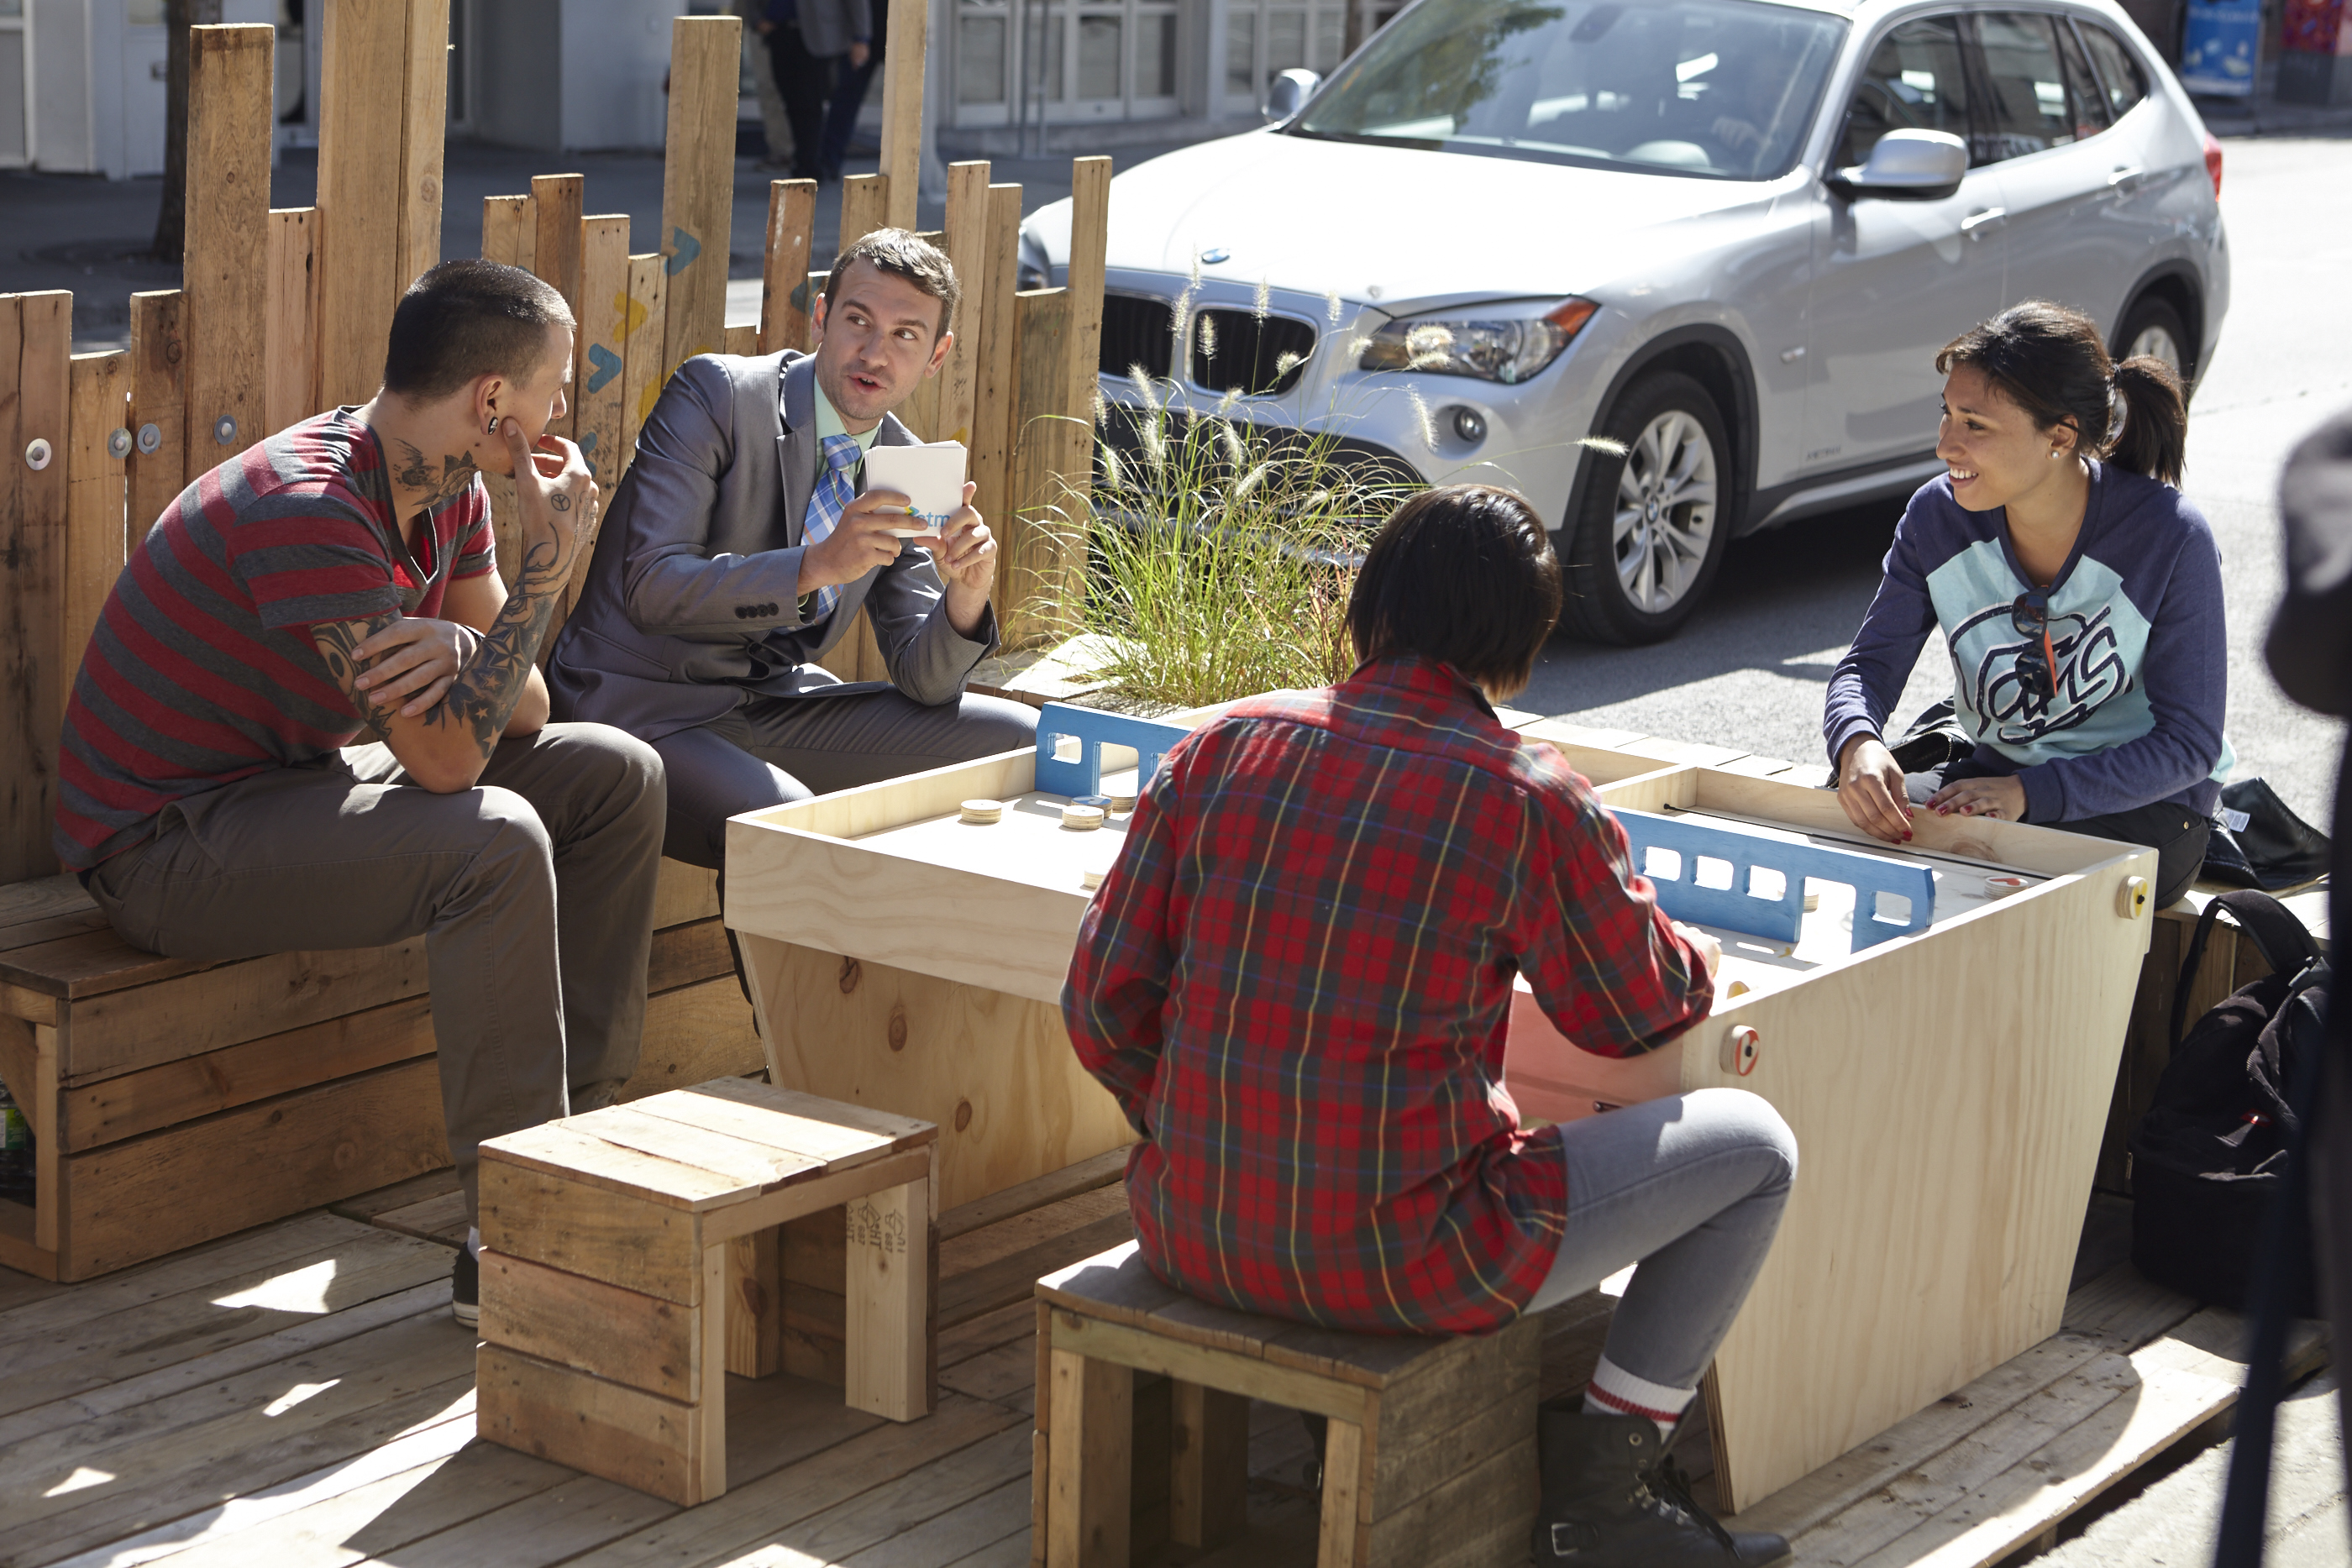 Espace Palettes - Park(ing) Day 2014